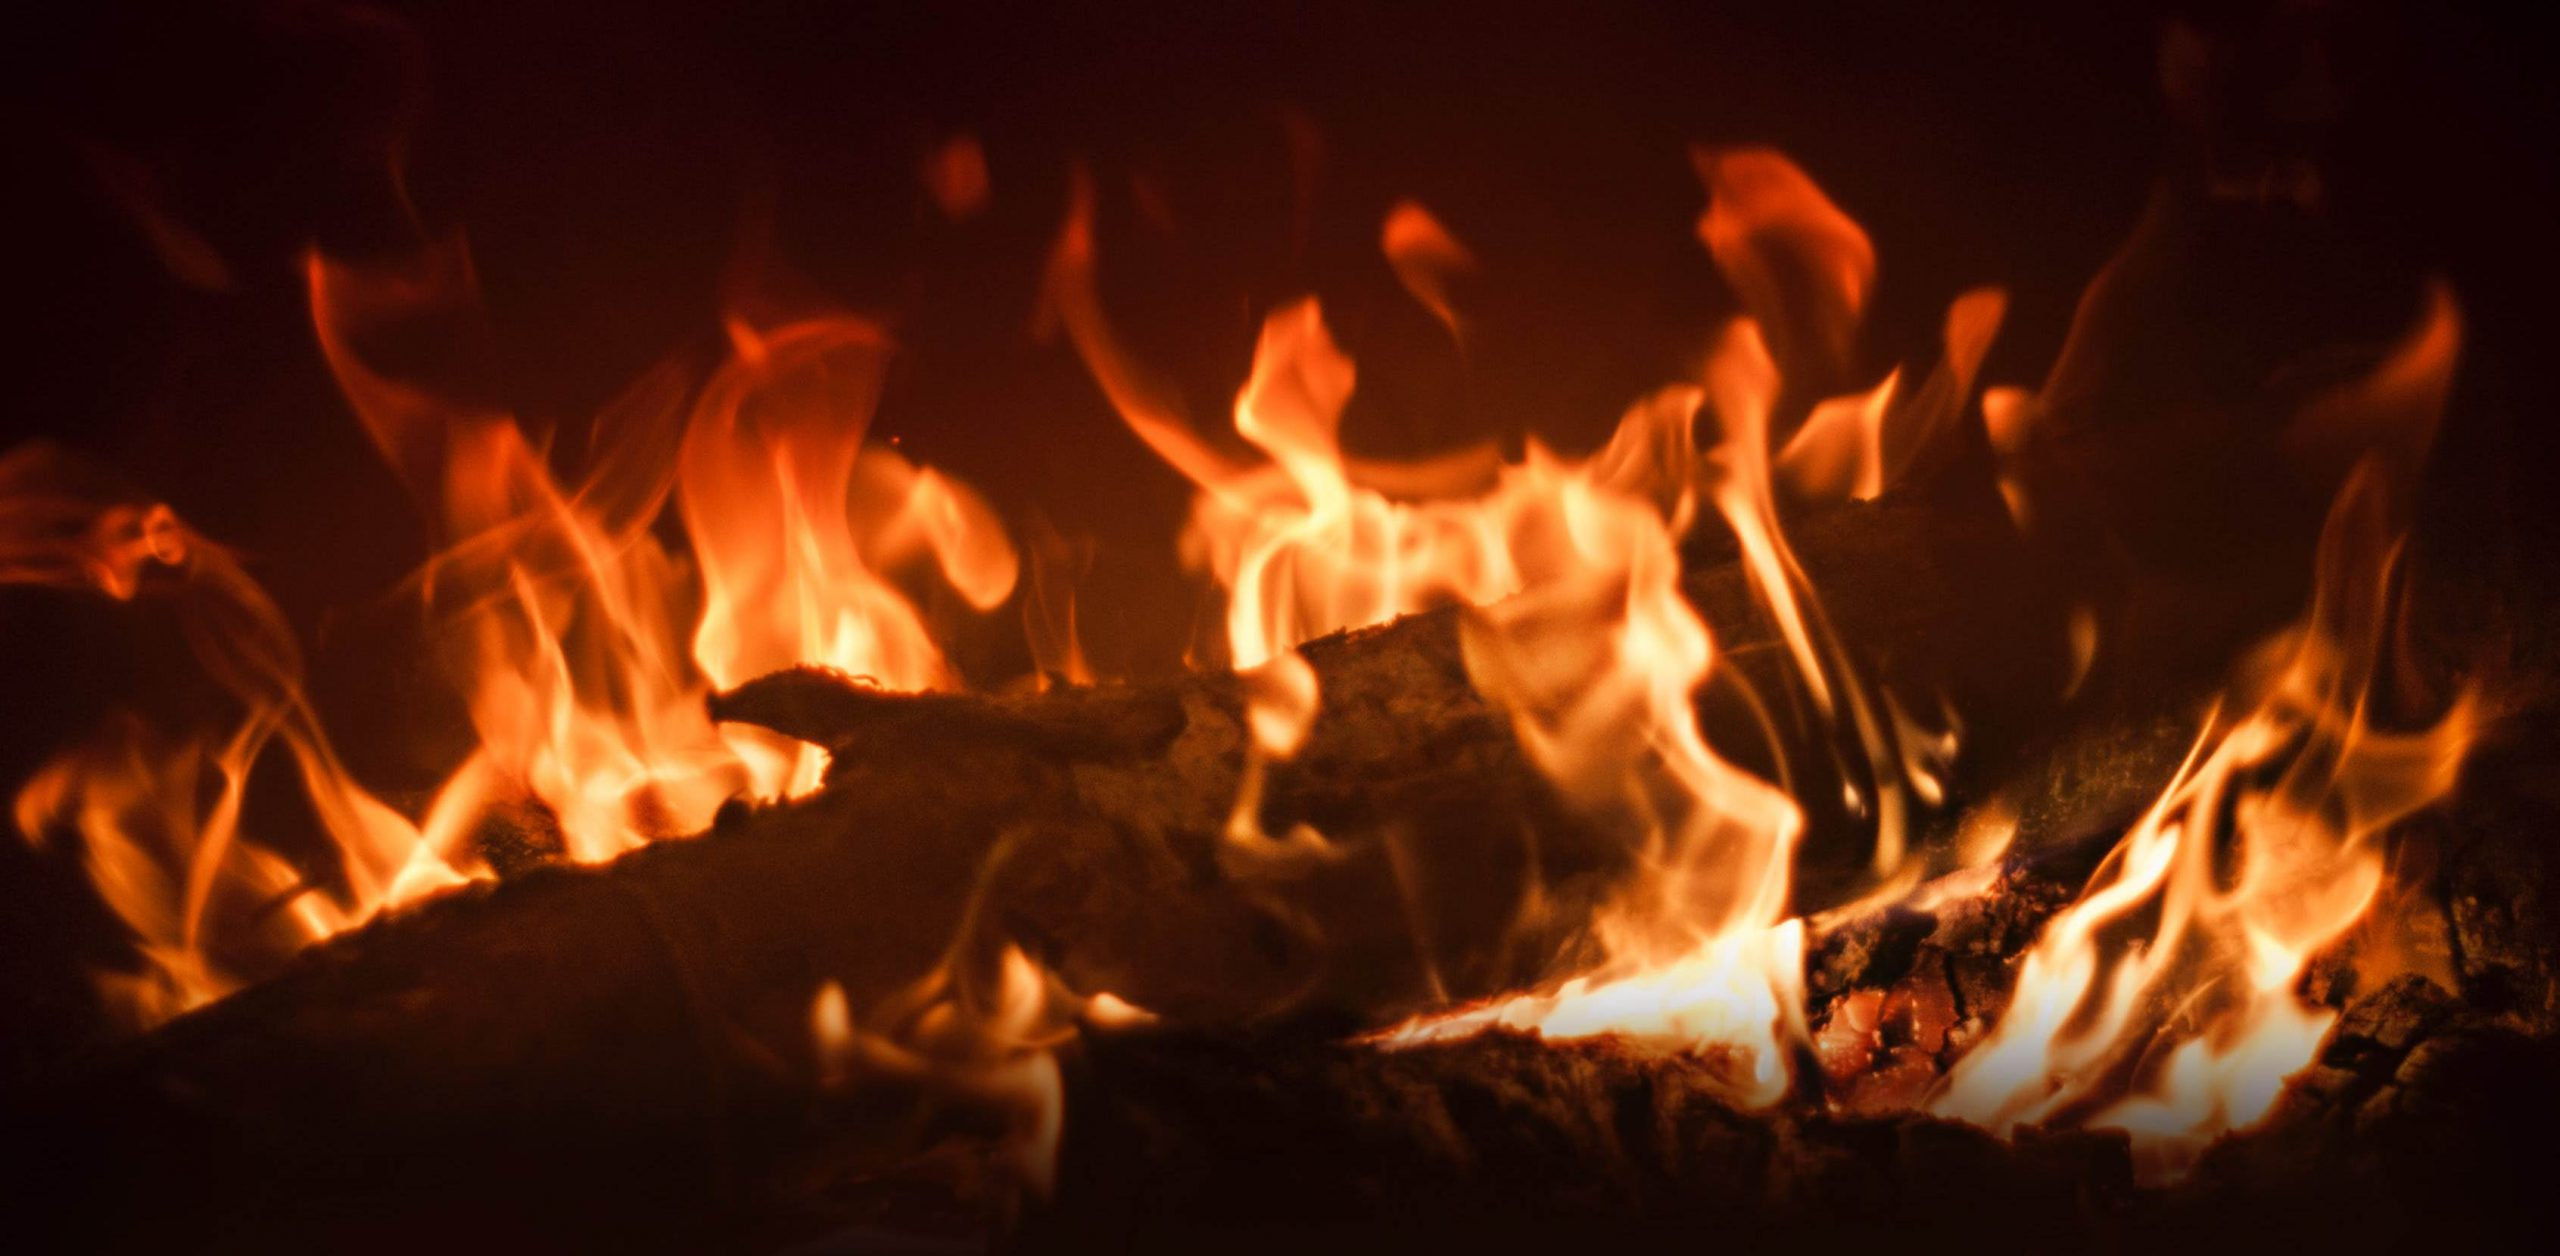 Proven combustion technology